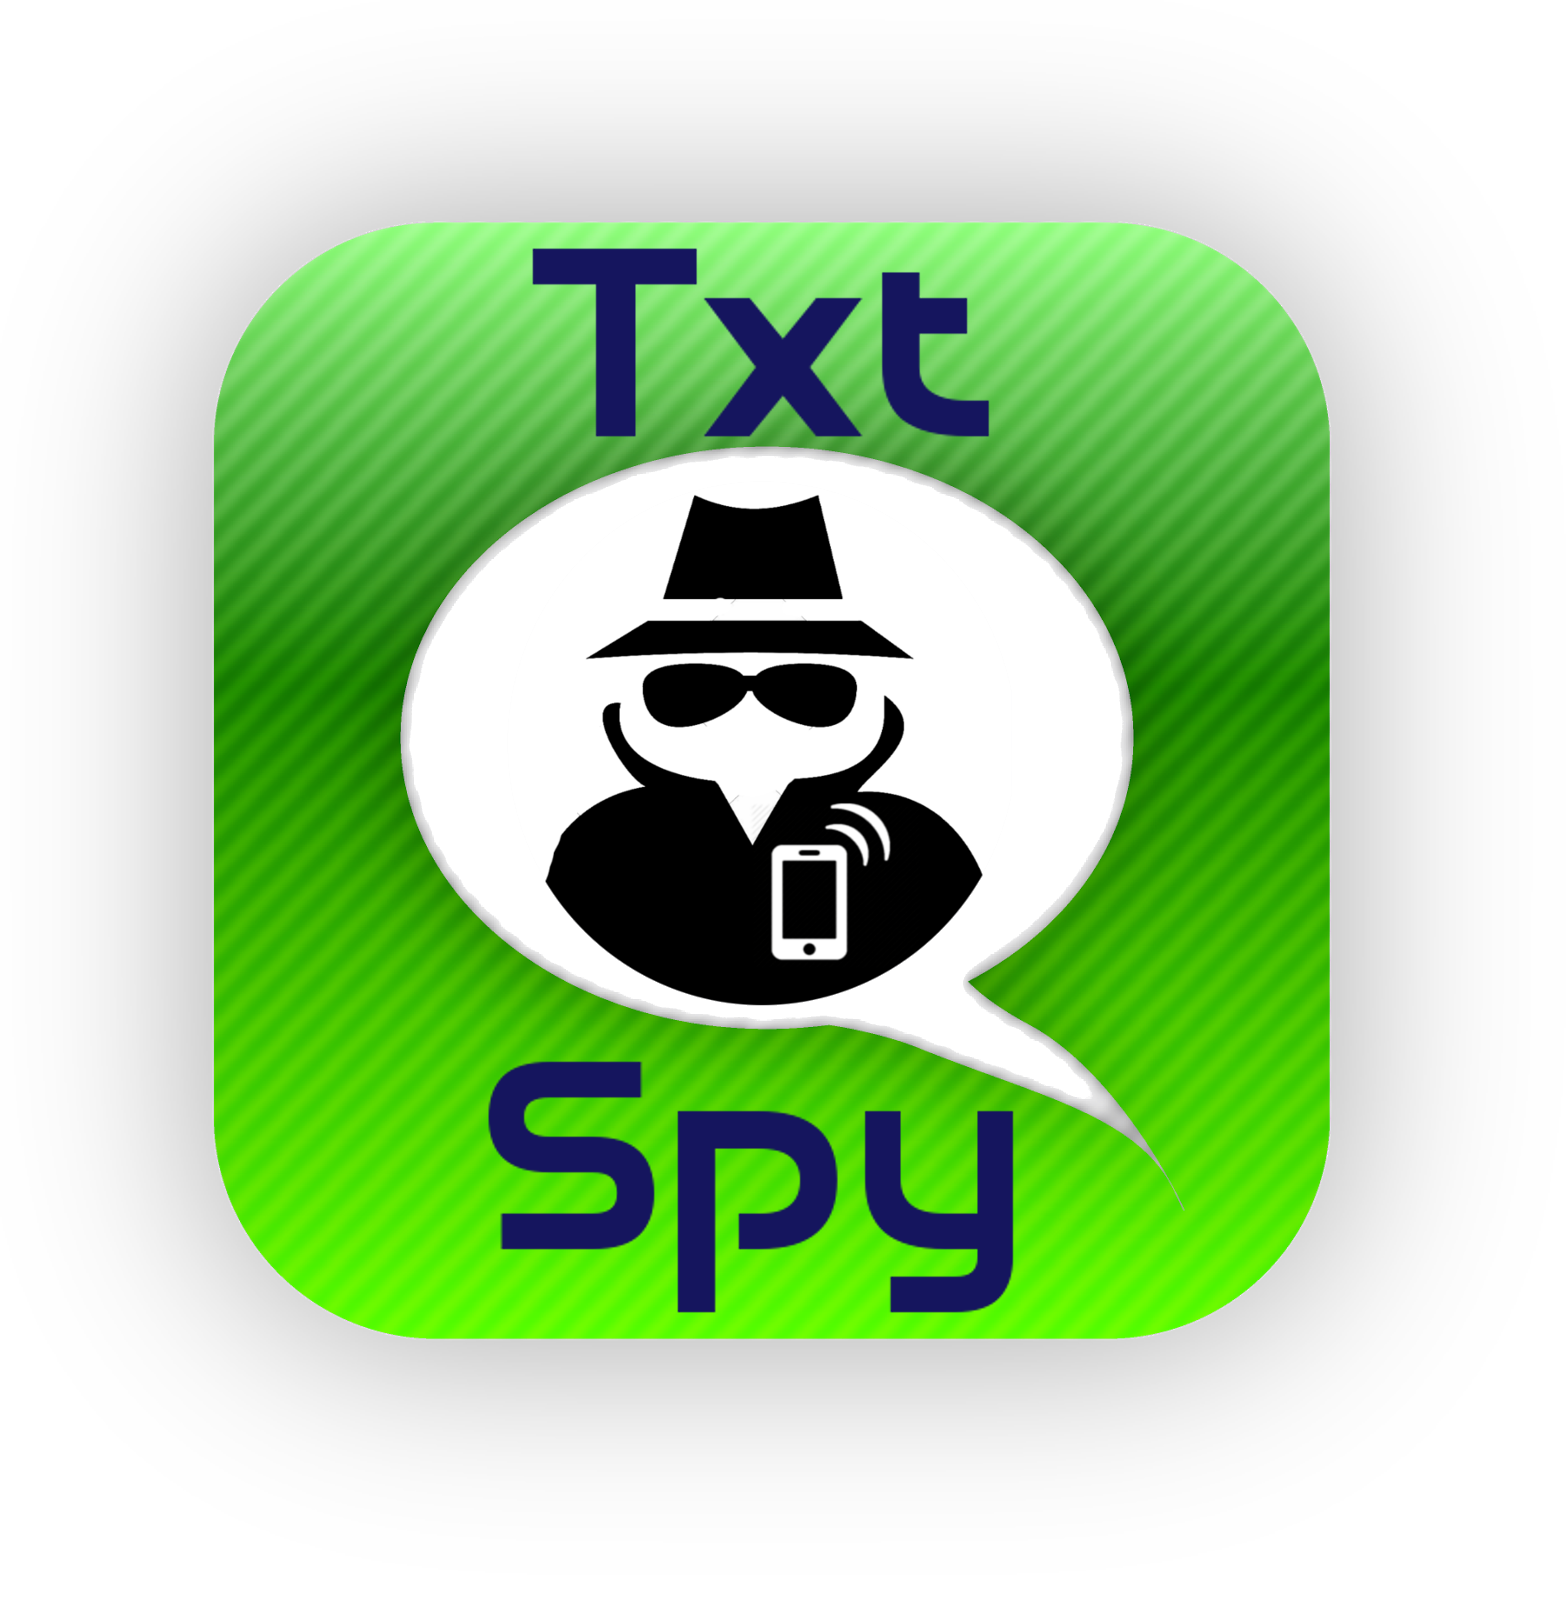 Text and Smartphone Spying txtspy phone